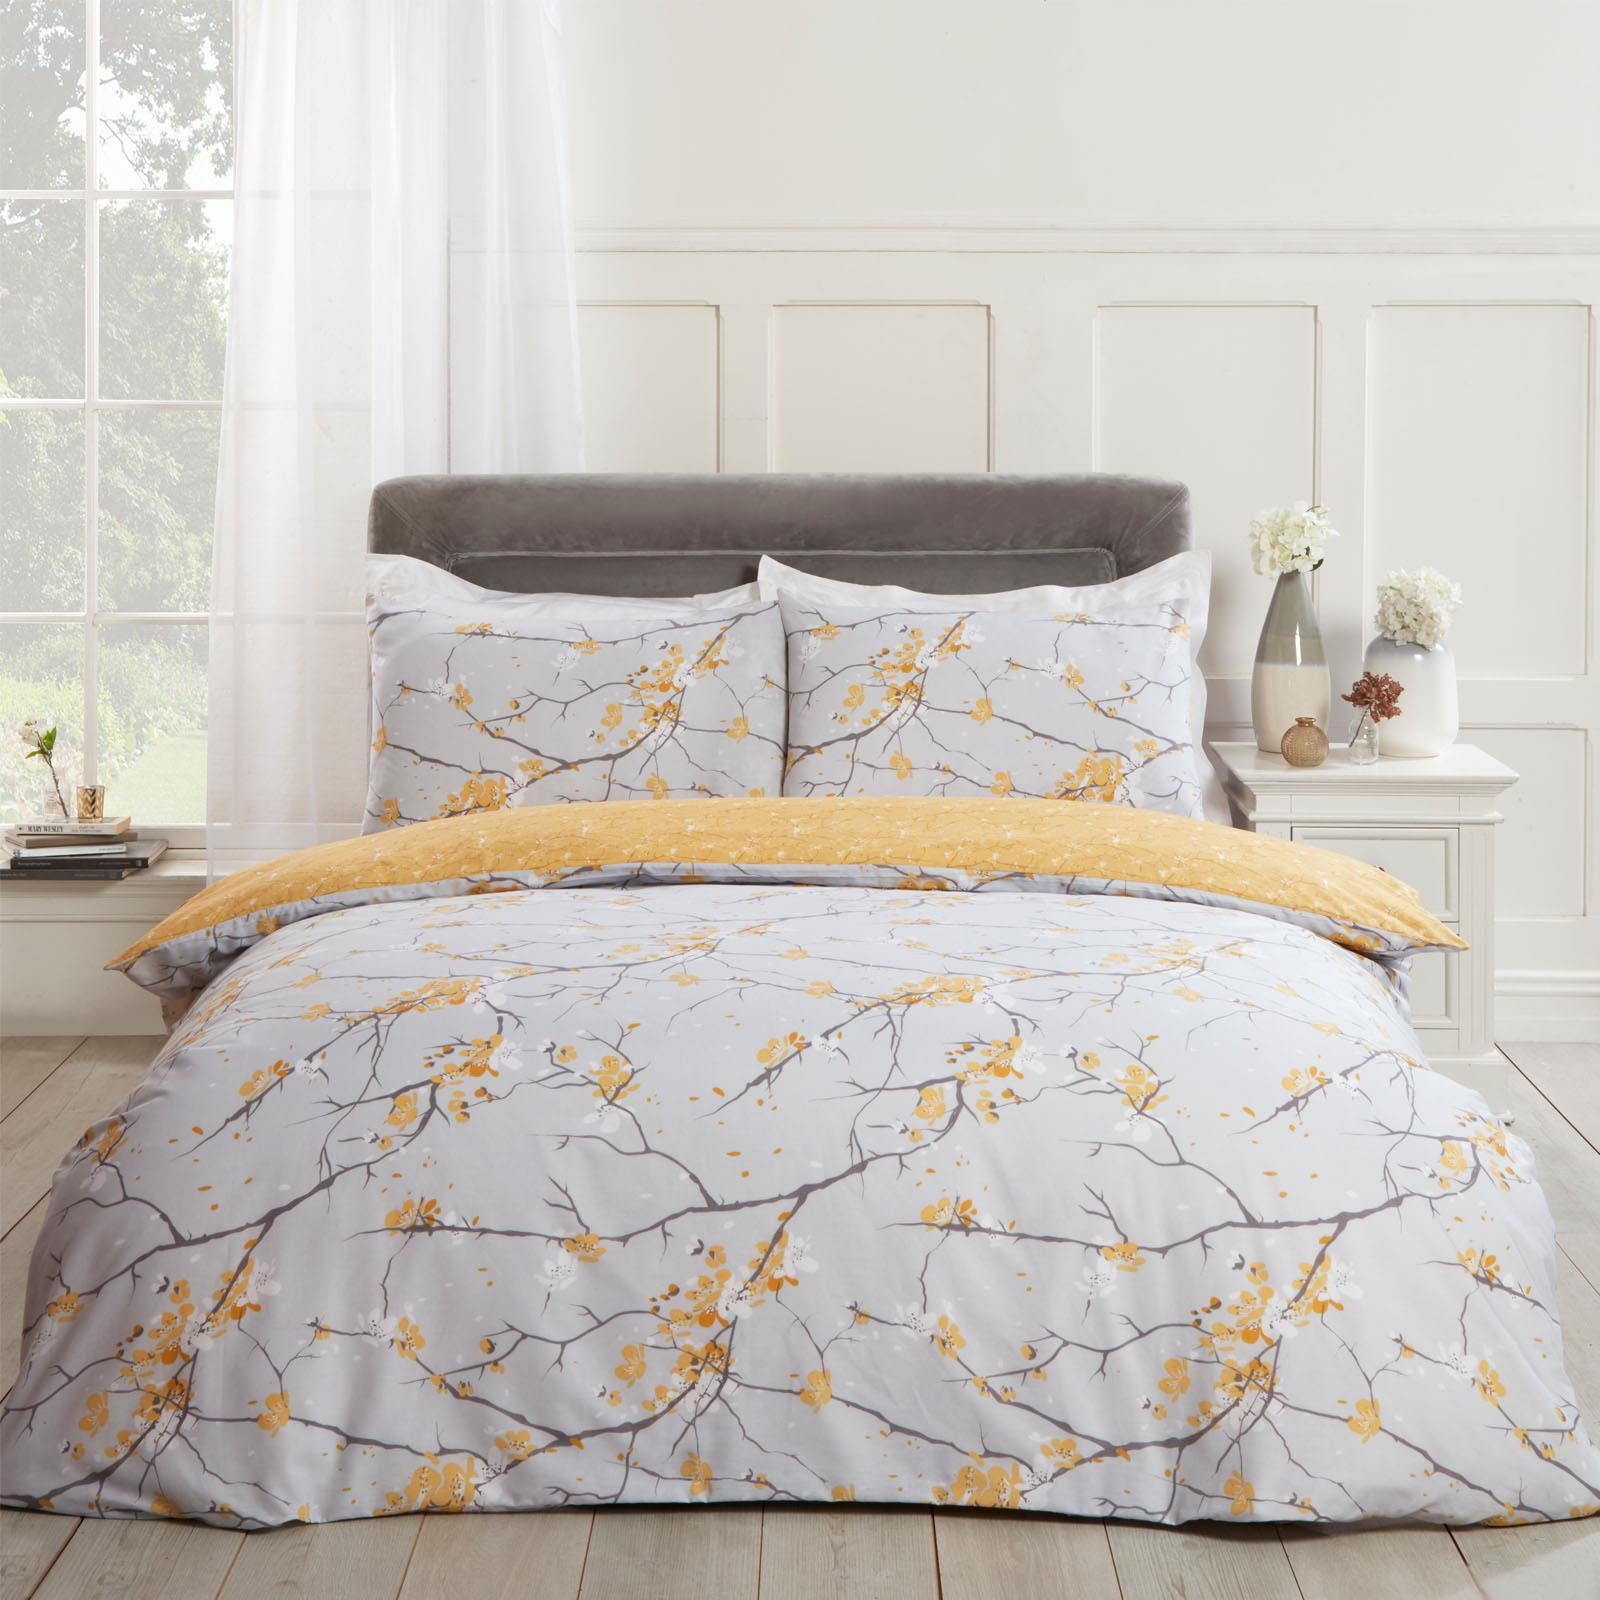 thumbnail 25 - Dreamscene Spring Blossoms Duvet Cover with Pillowcases Bedding Set Blush Ochre